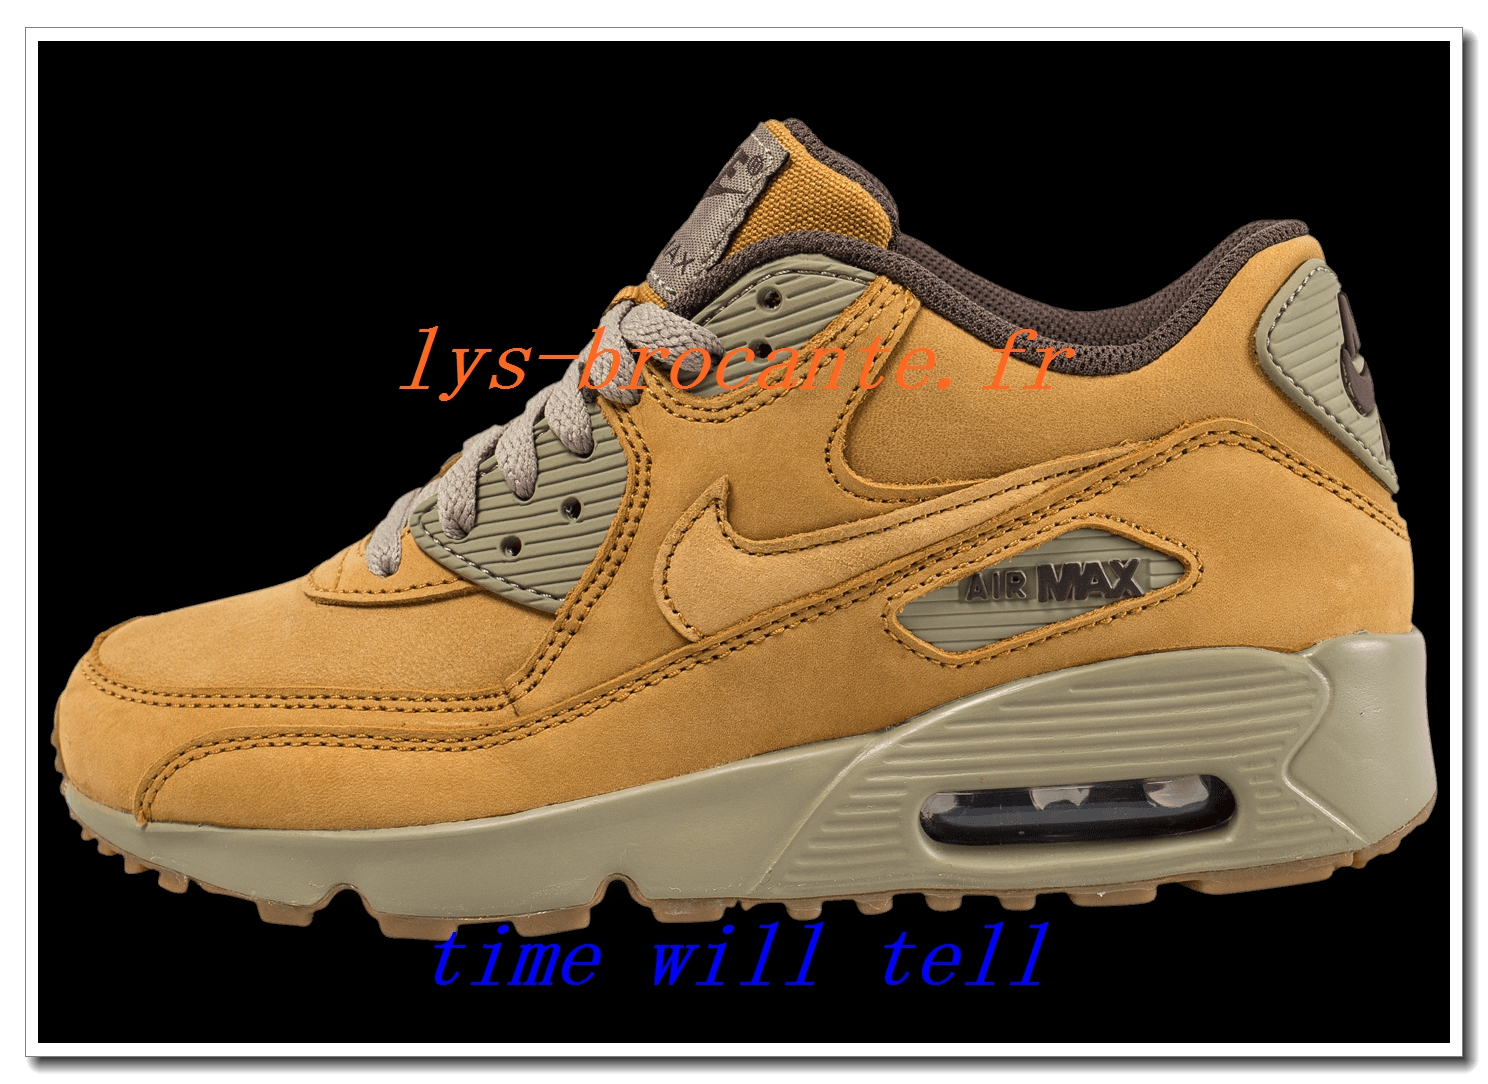 best sneakers ca6ae d098e Fashion Style Chaussures Hommes Nike Air Max 90 Homme Bleu Violet Taille   41 42 43 44 ... BASKET NIKE Air Max 90 Essential - 537384-113 - Taille 41